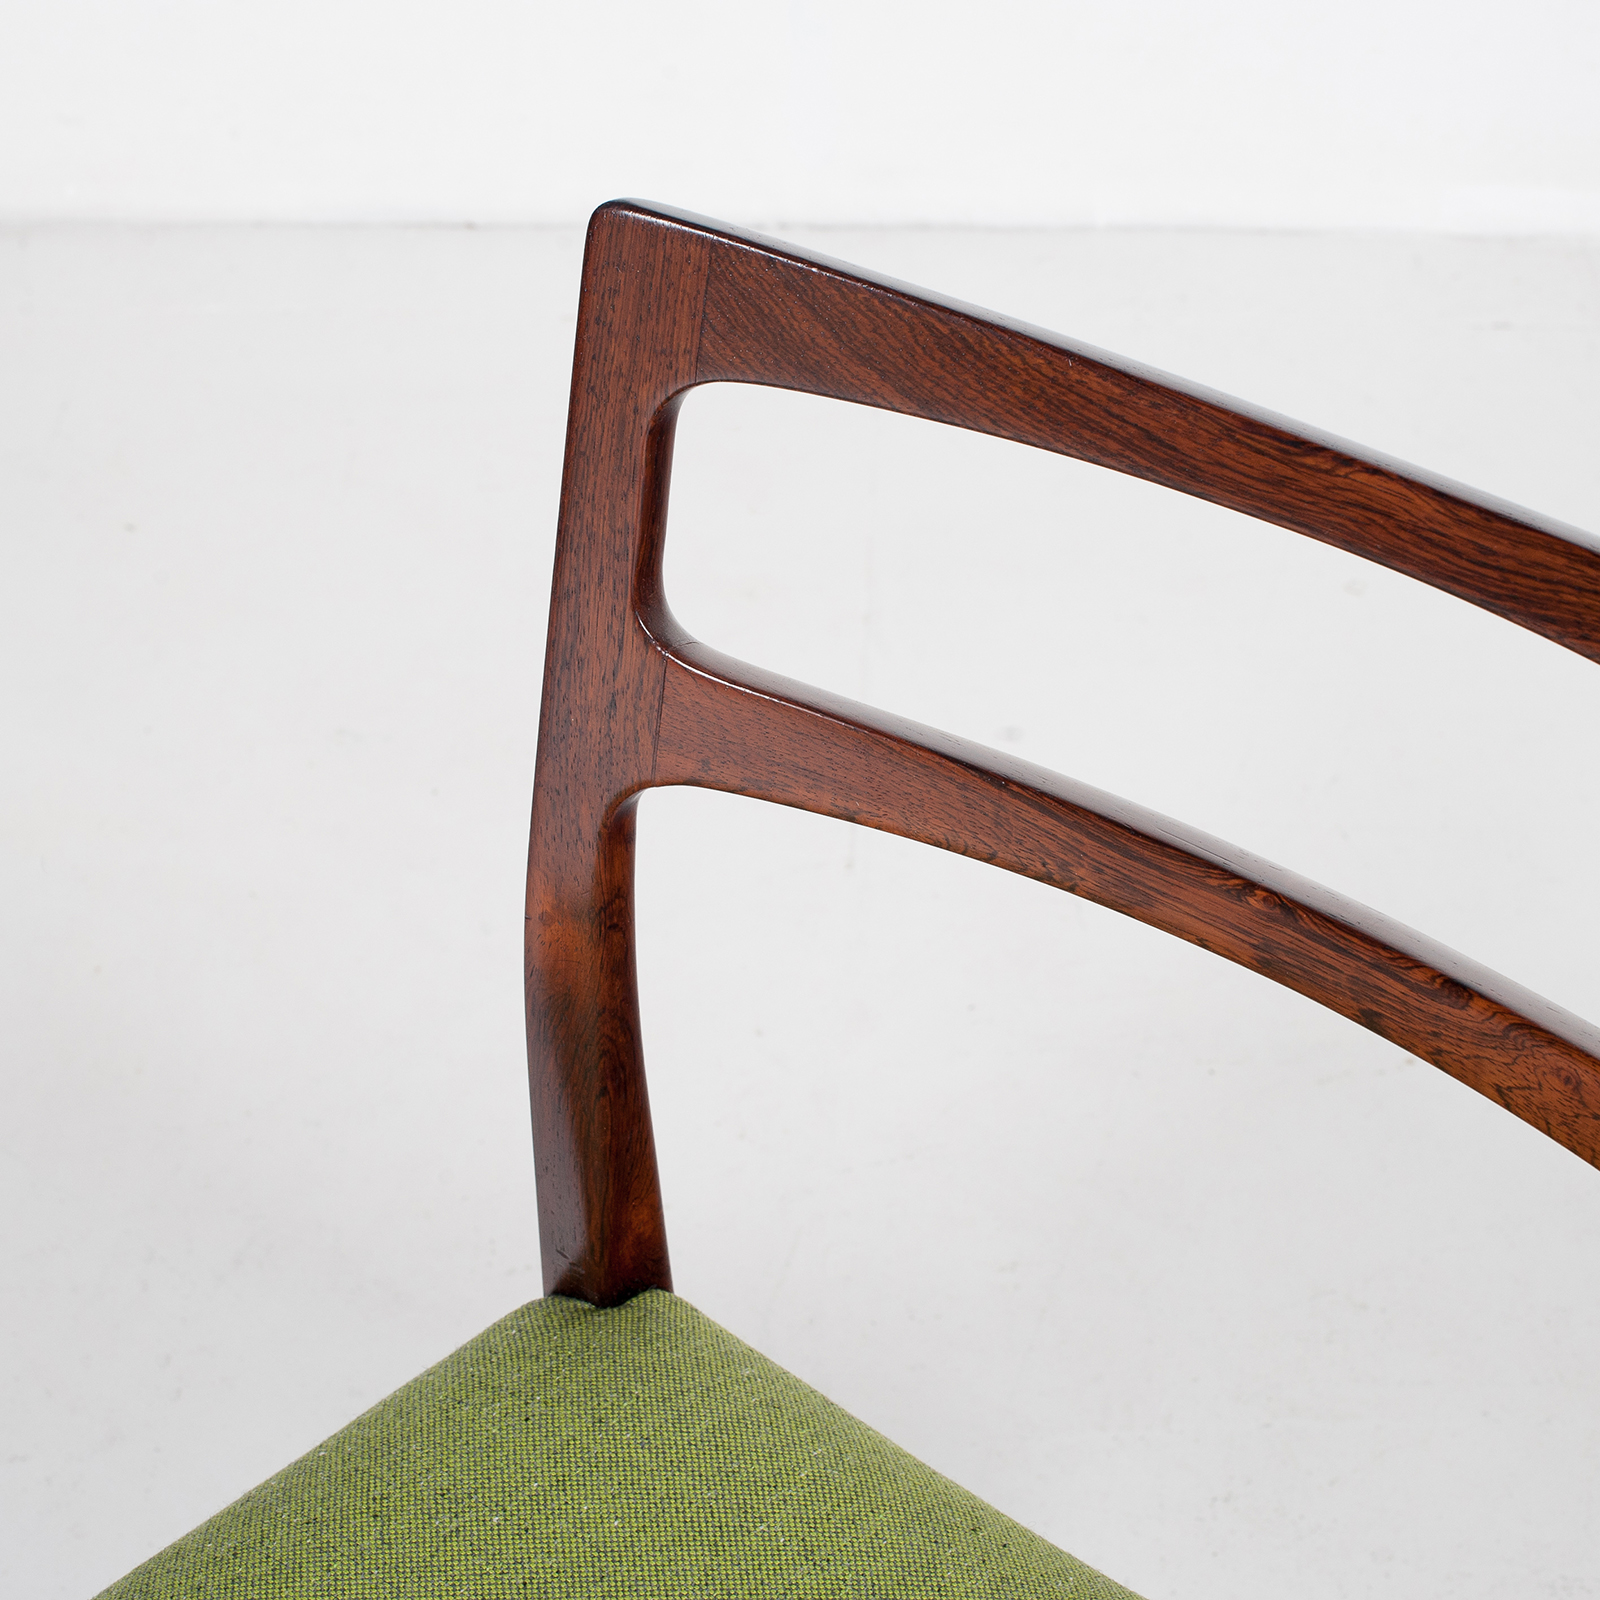 Set Of 4 Ladder Back Dining Chairs By Niels Moller In Rosewood, 1960s, Denmark28